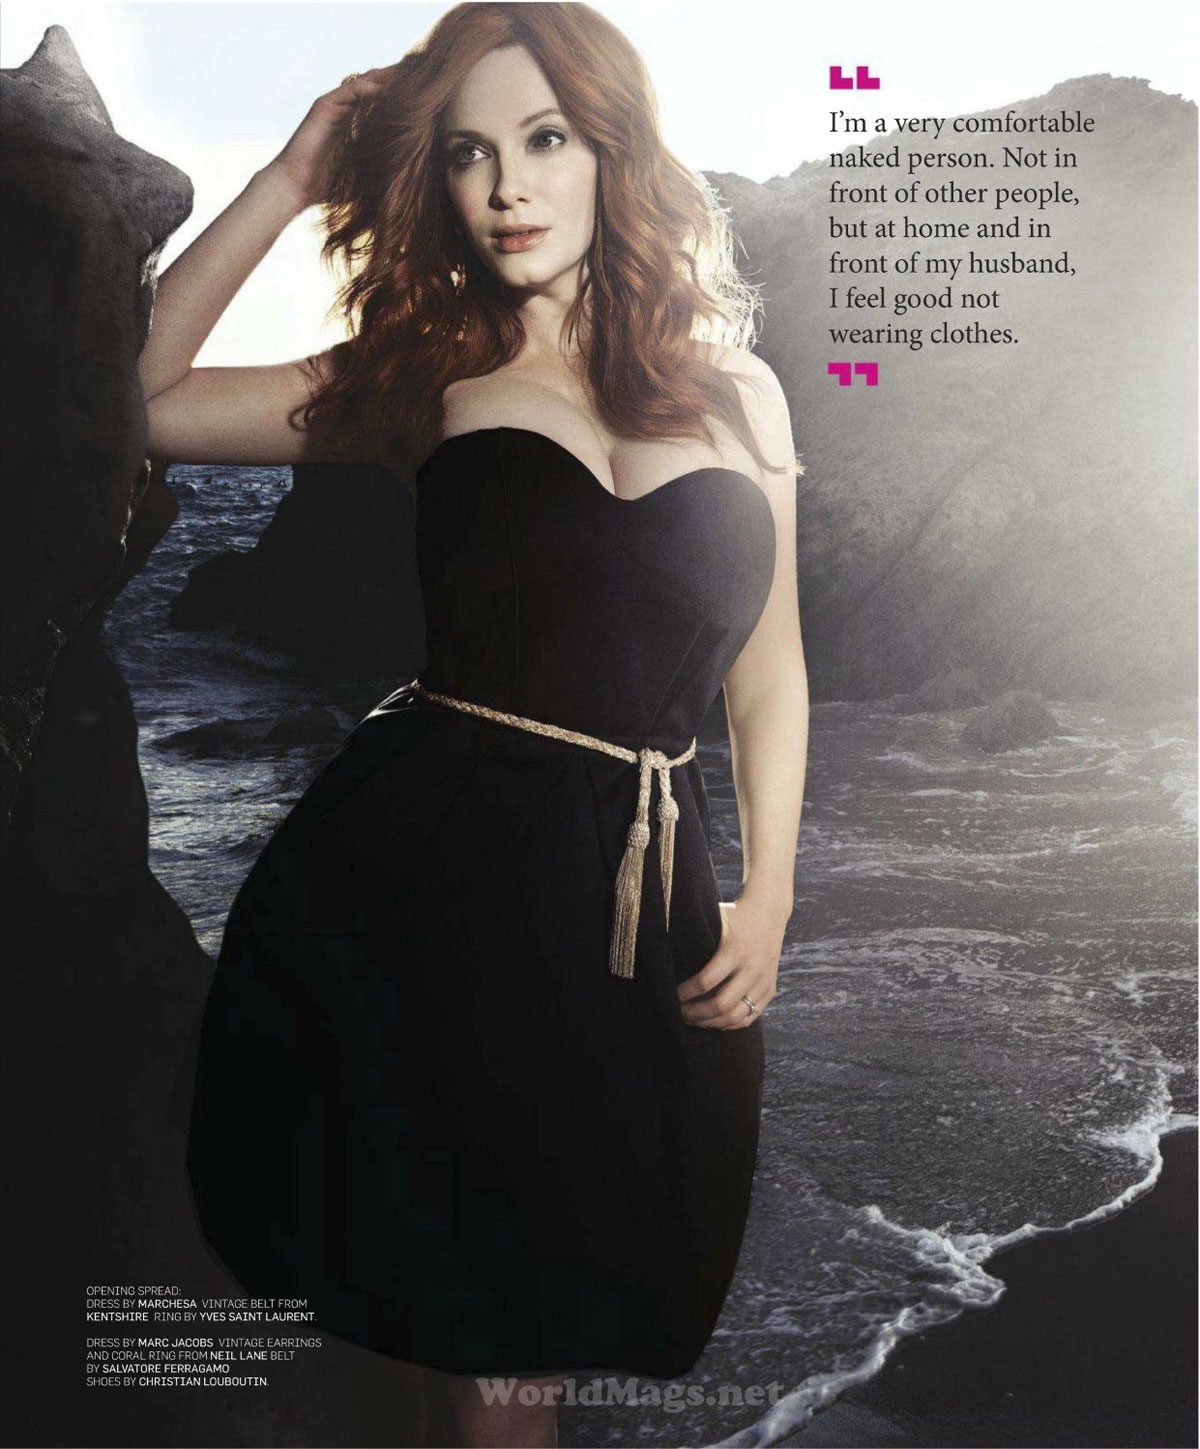 http://2.bp.blogspot.com/-lo5EDyzEwsA/T1t3vI0kz6I/AAAAAAAAH-A/vQVEIGwz4Us/s1600/Christina-Hendricks-in-BlackBook-Magazine-March-2012-Issue-10.jpg